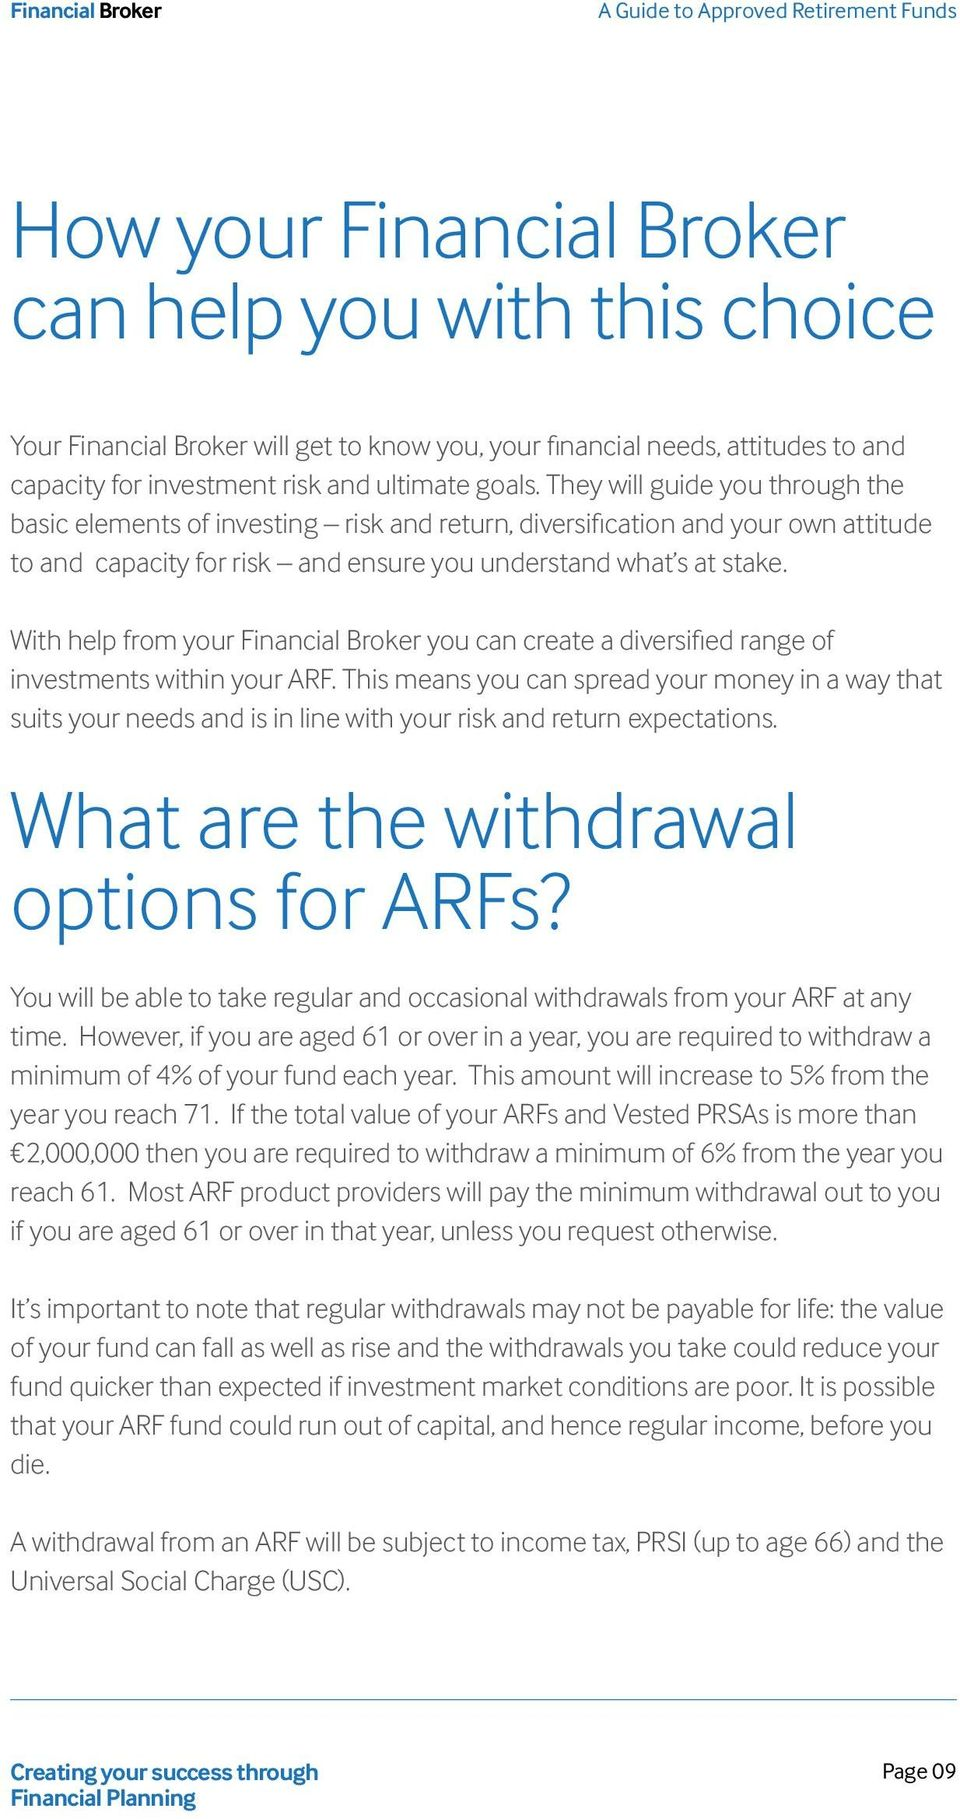 With help from your Financial Broker you can create a diversified range of investments within your ARF.